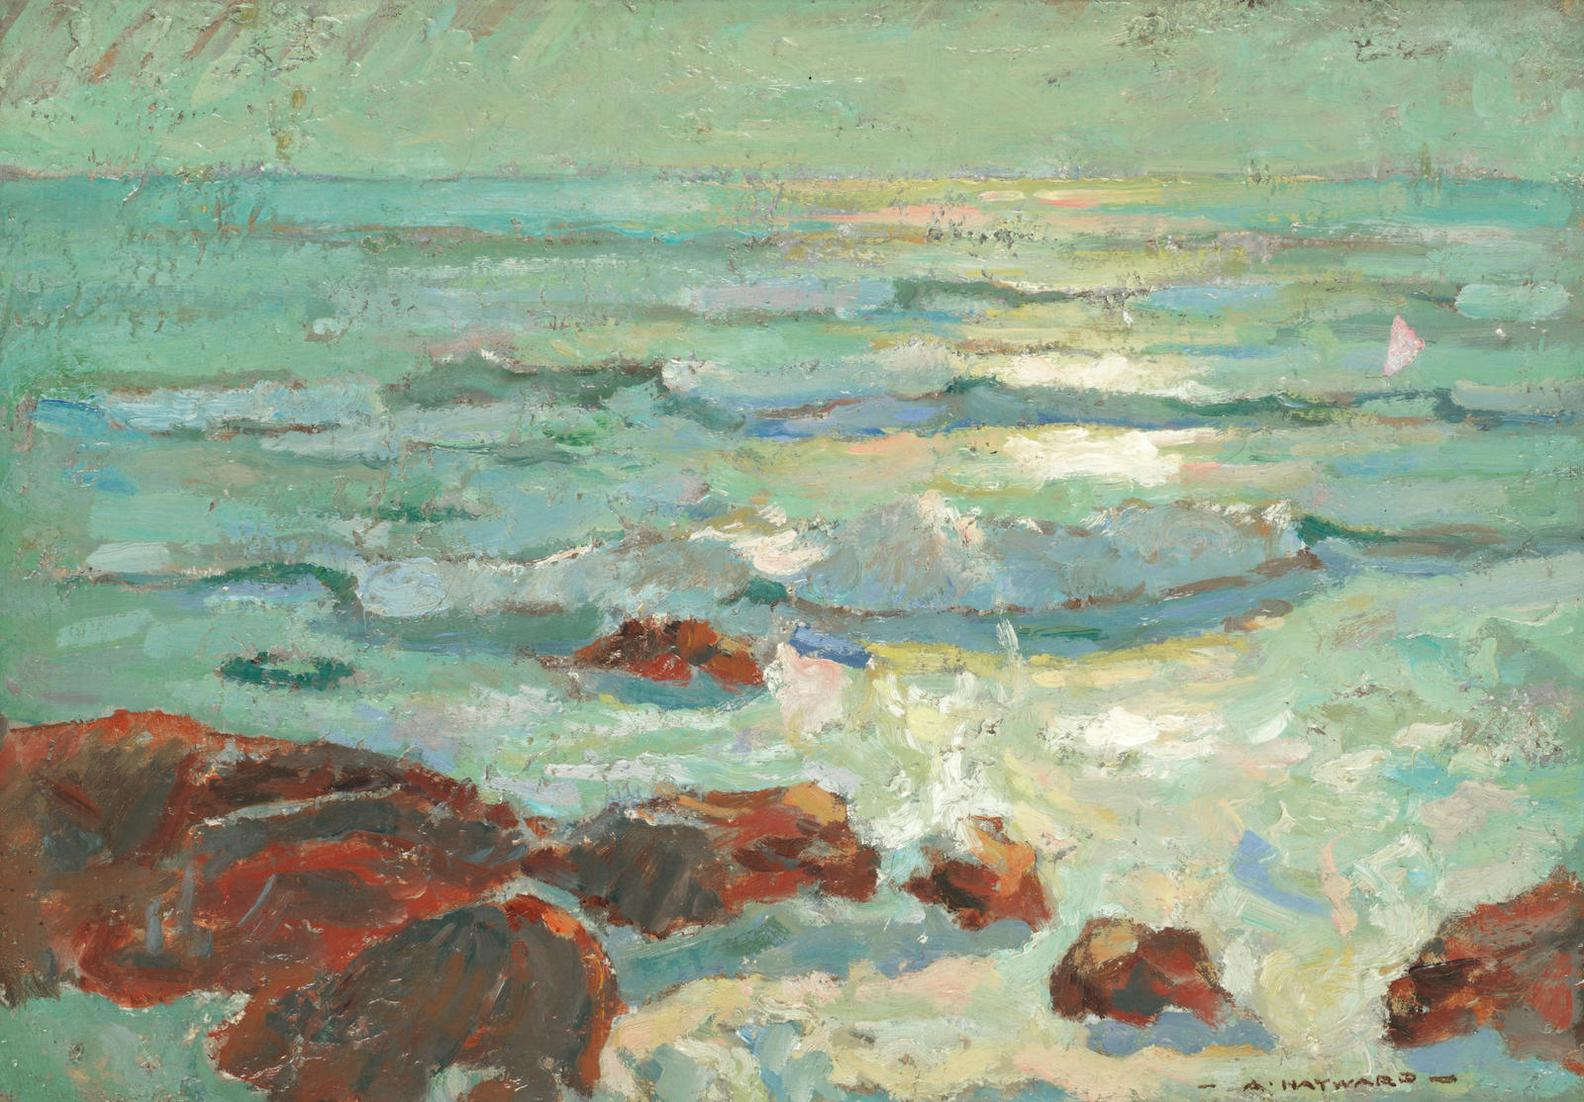 Arthur Hayward - Morning Light, St Ives-